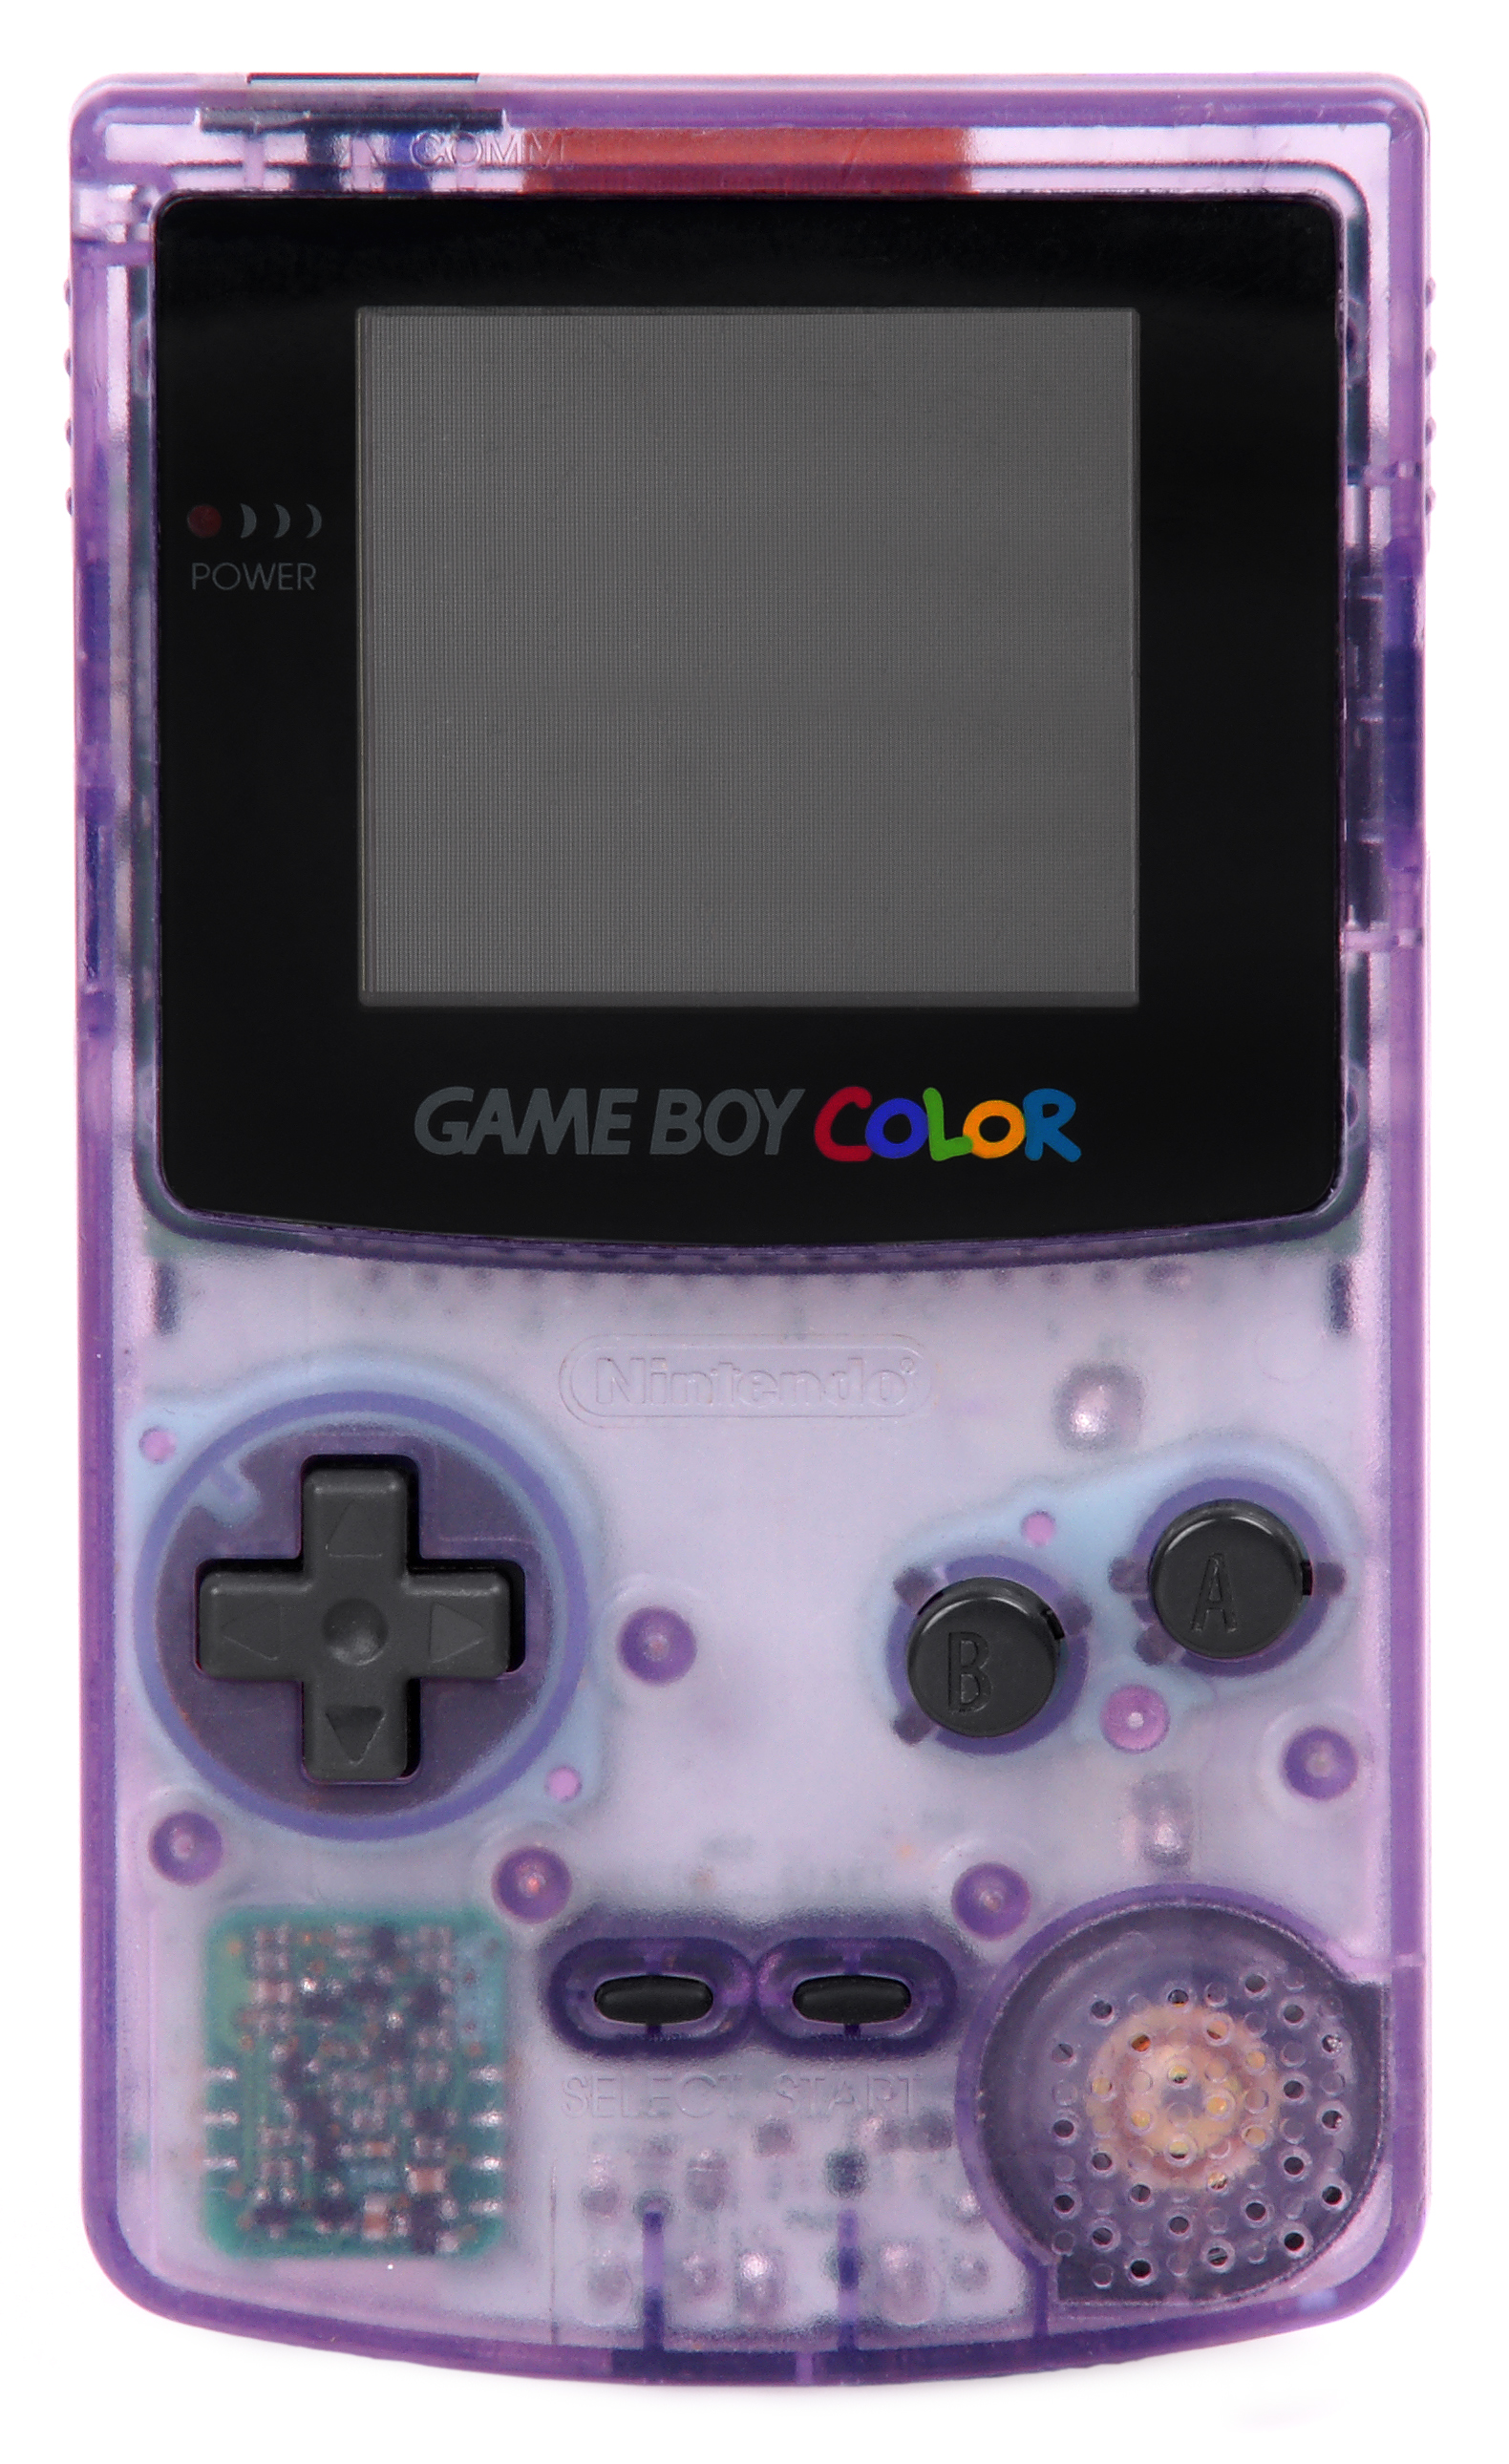 game_boy_color_-_purple_model